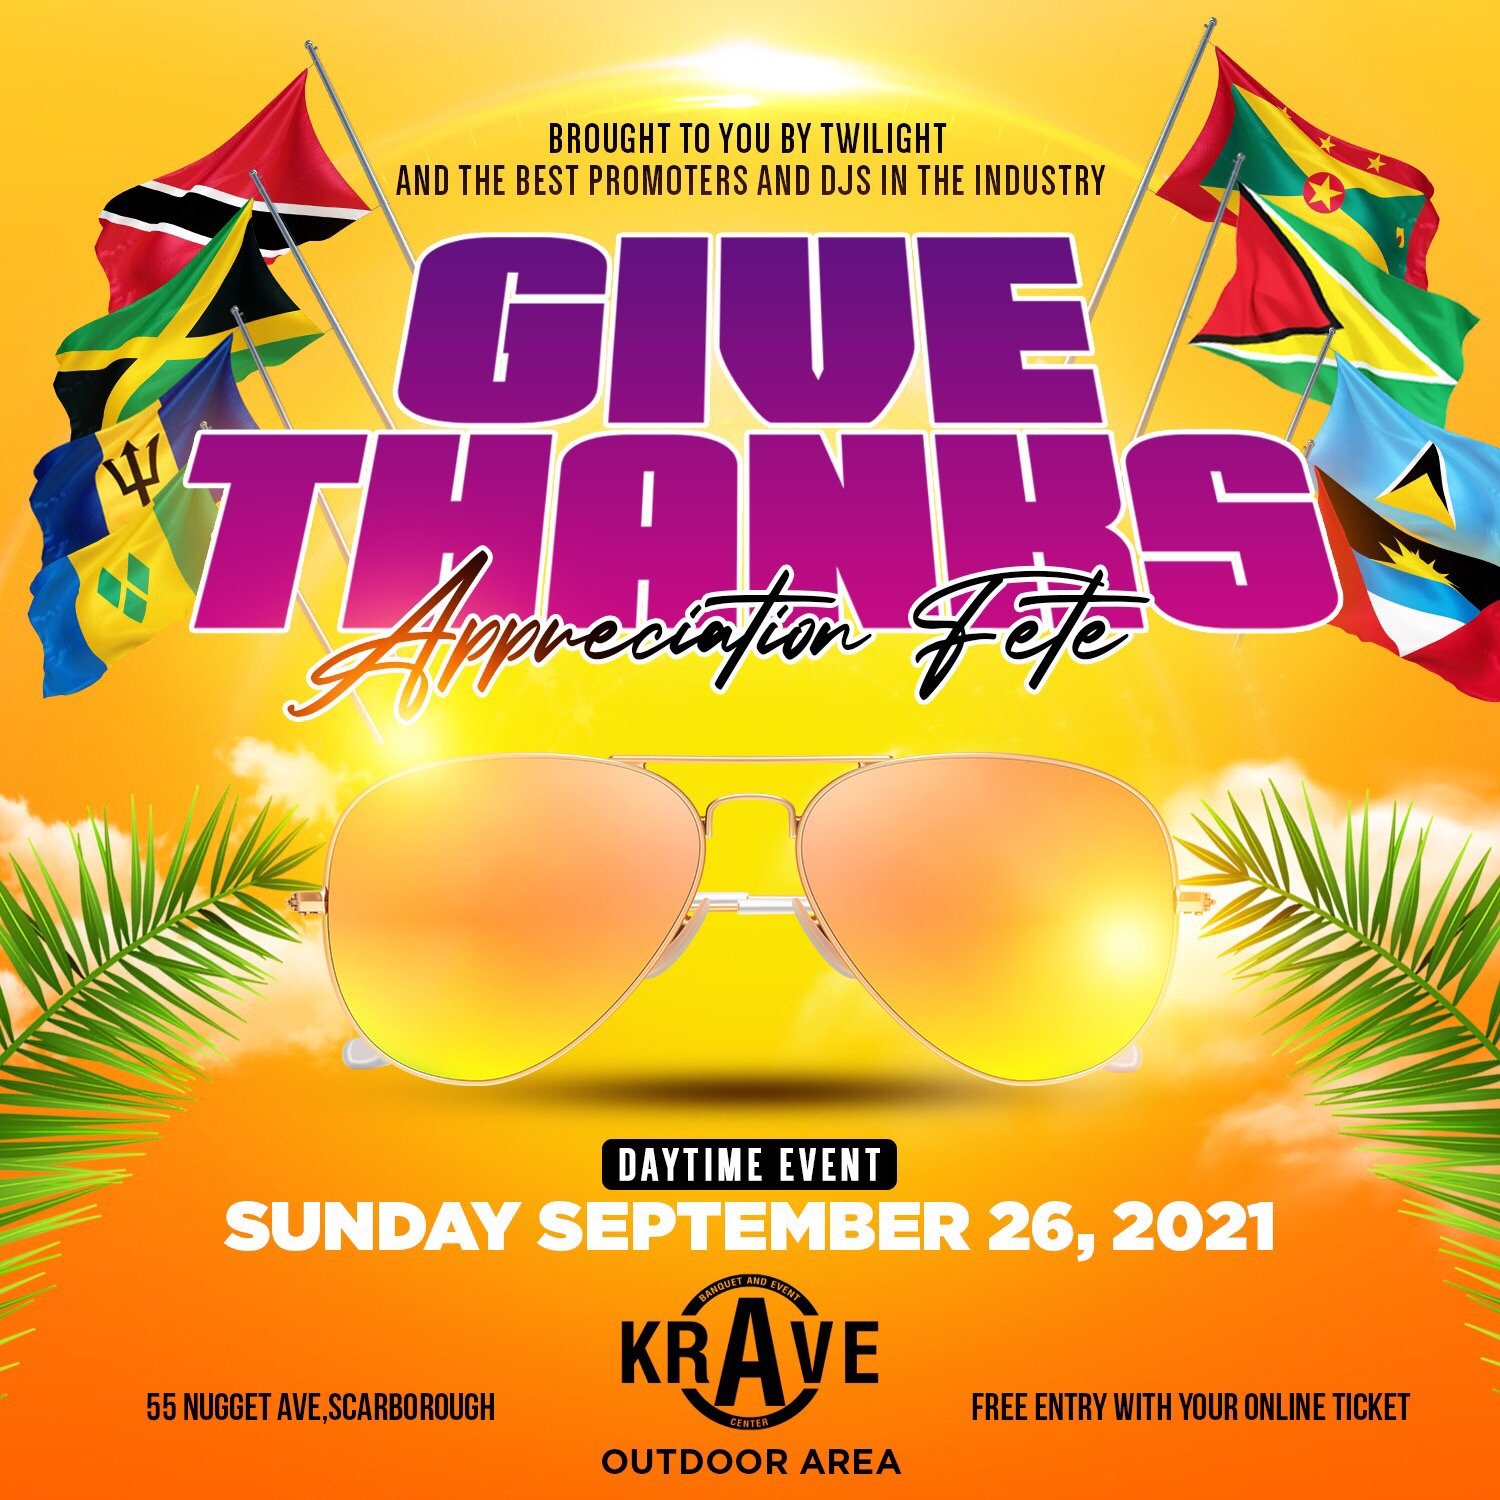 Give Thanks Appreciation fete - Presented by Twilight and the best Promoters and Djs in the industry